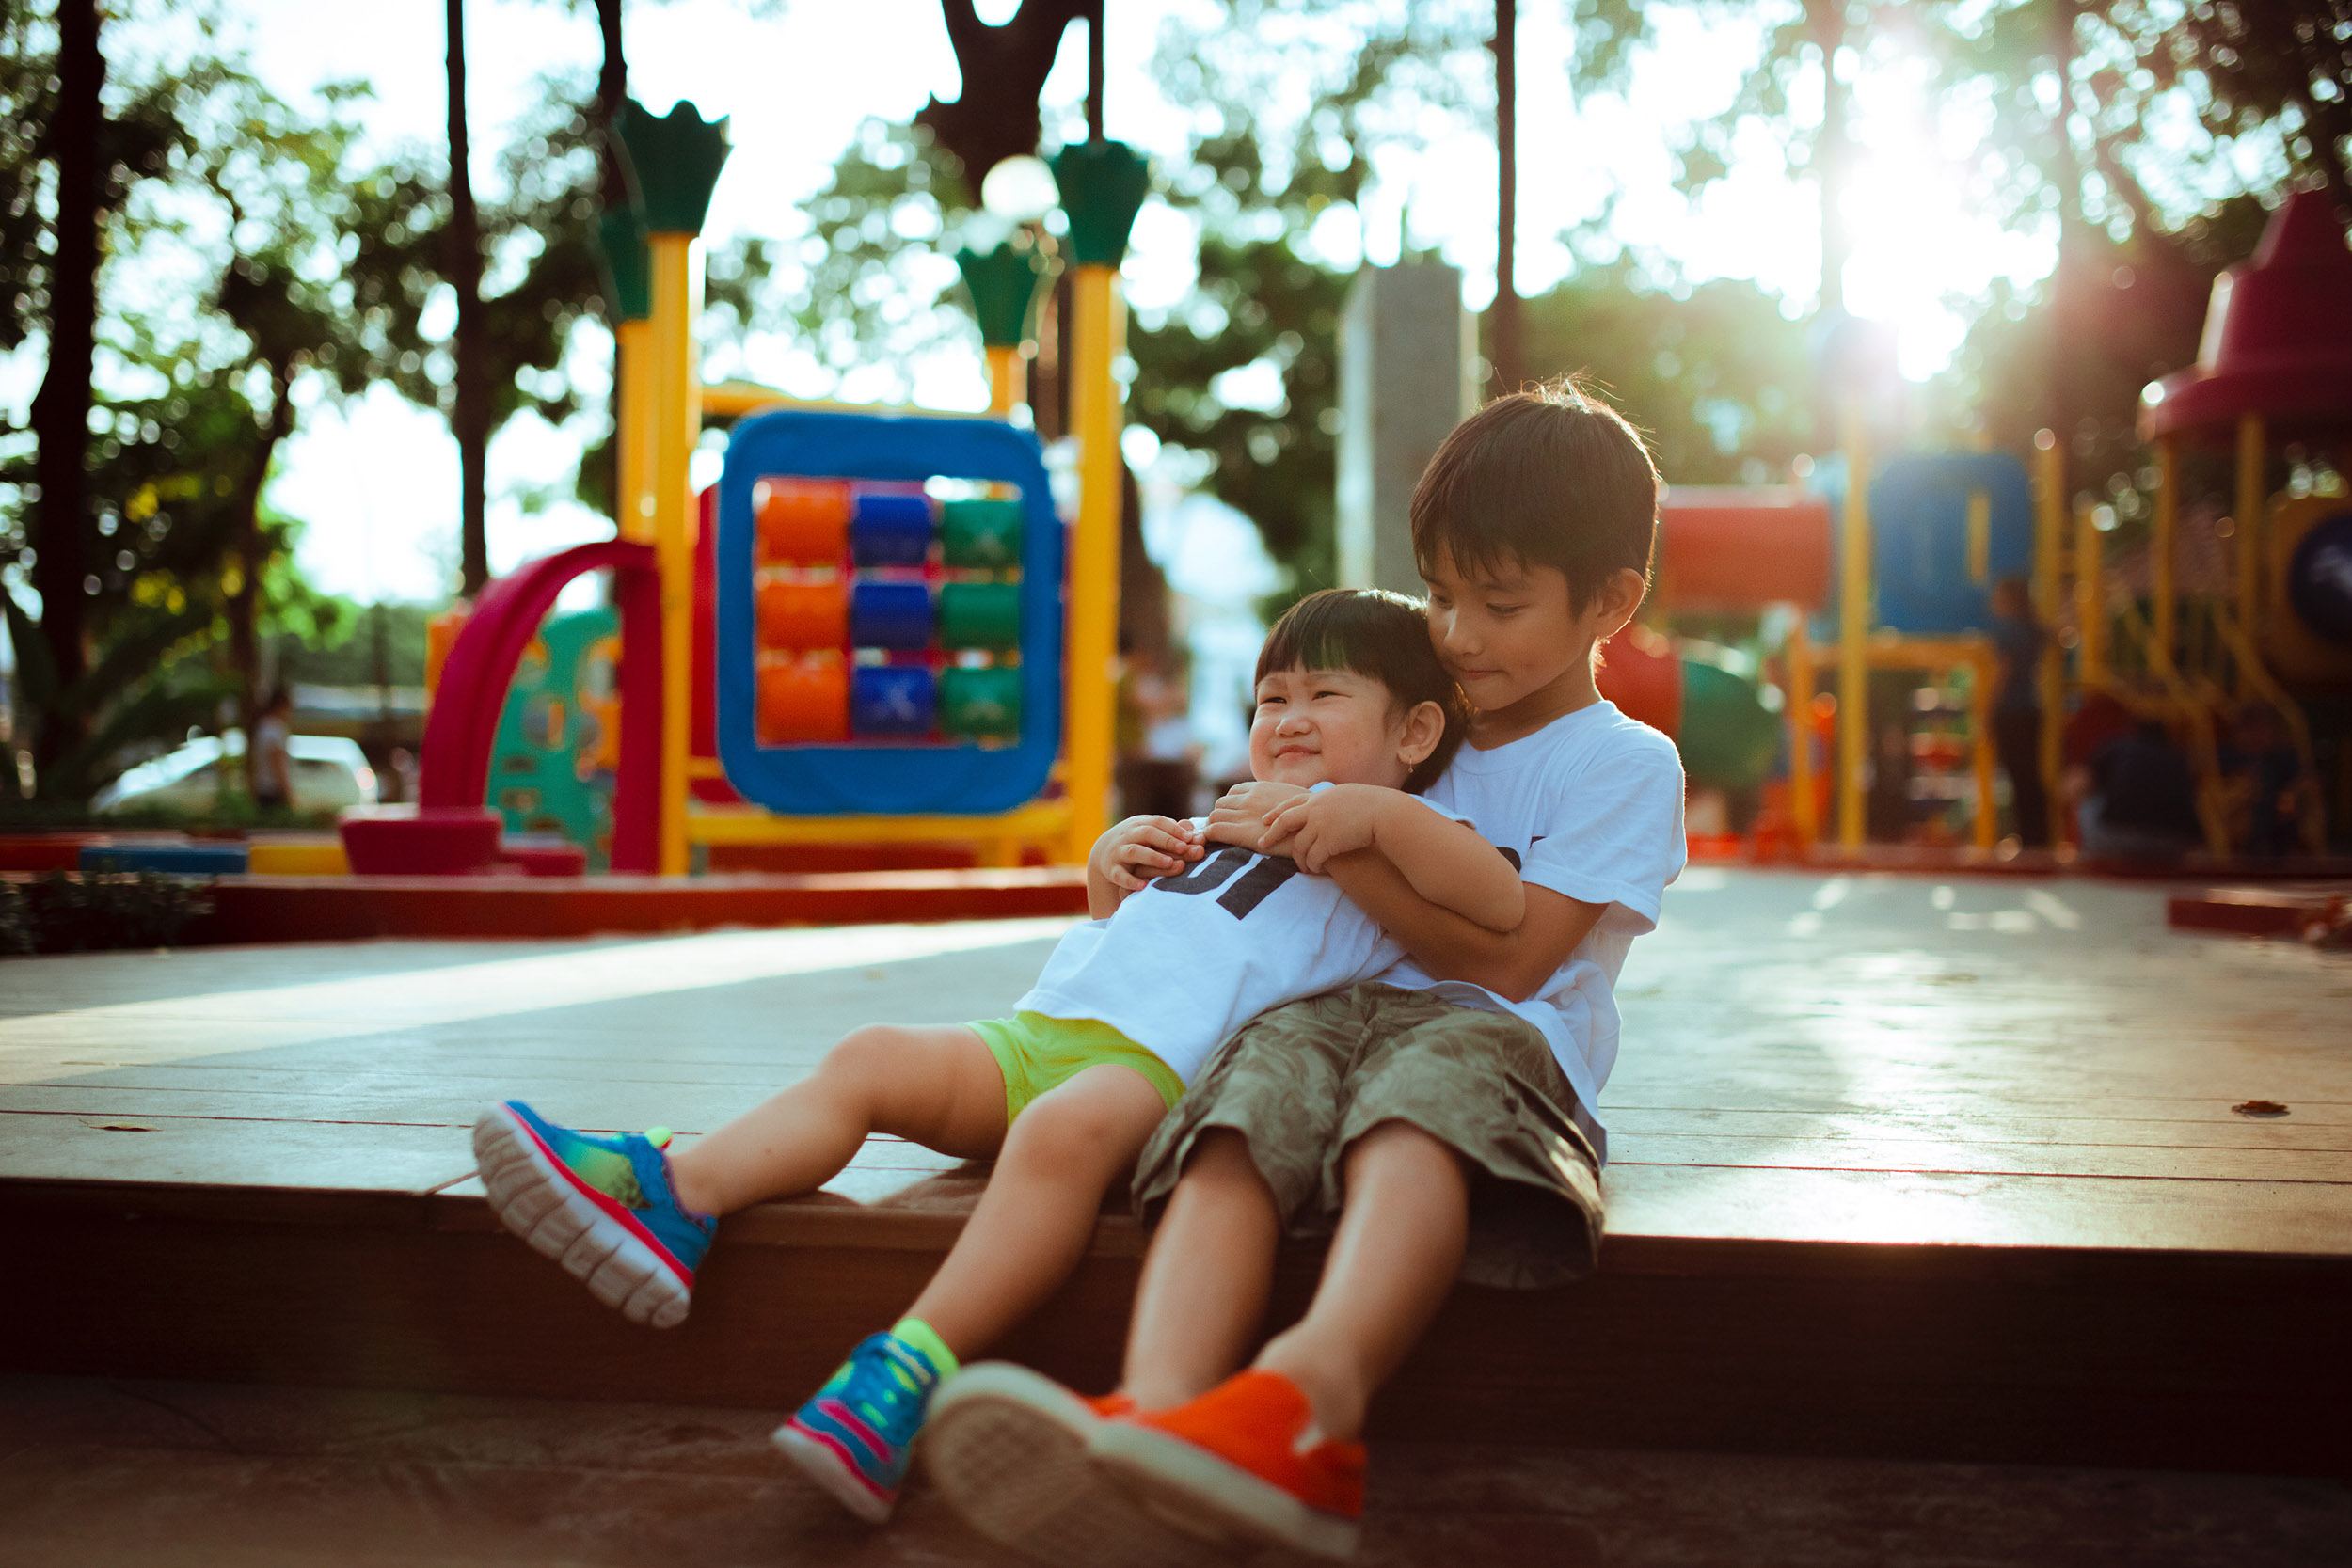 The Significant Relationships Every Elementary Schooler Needs